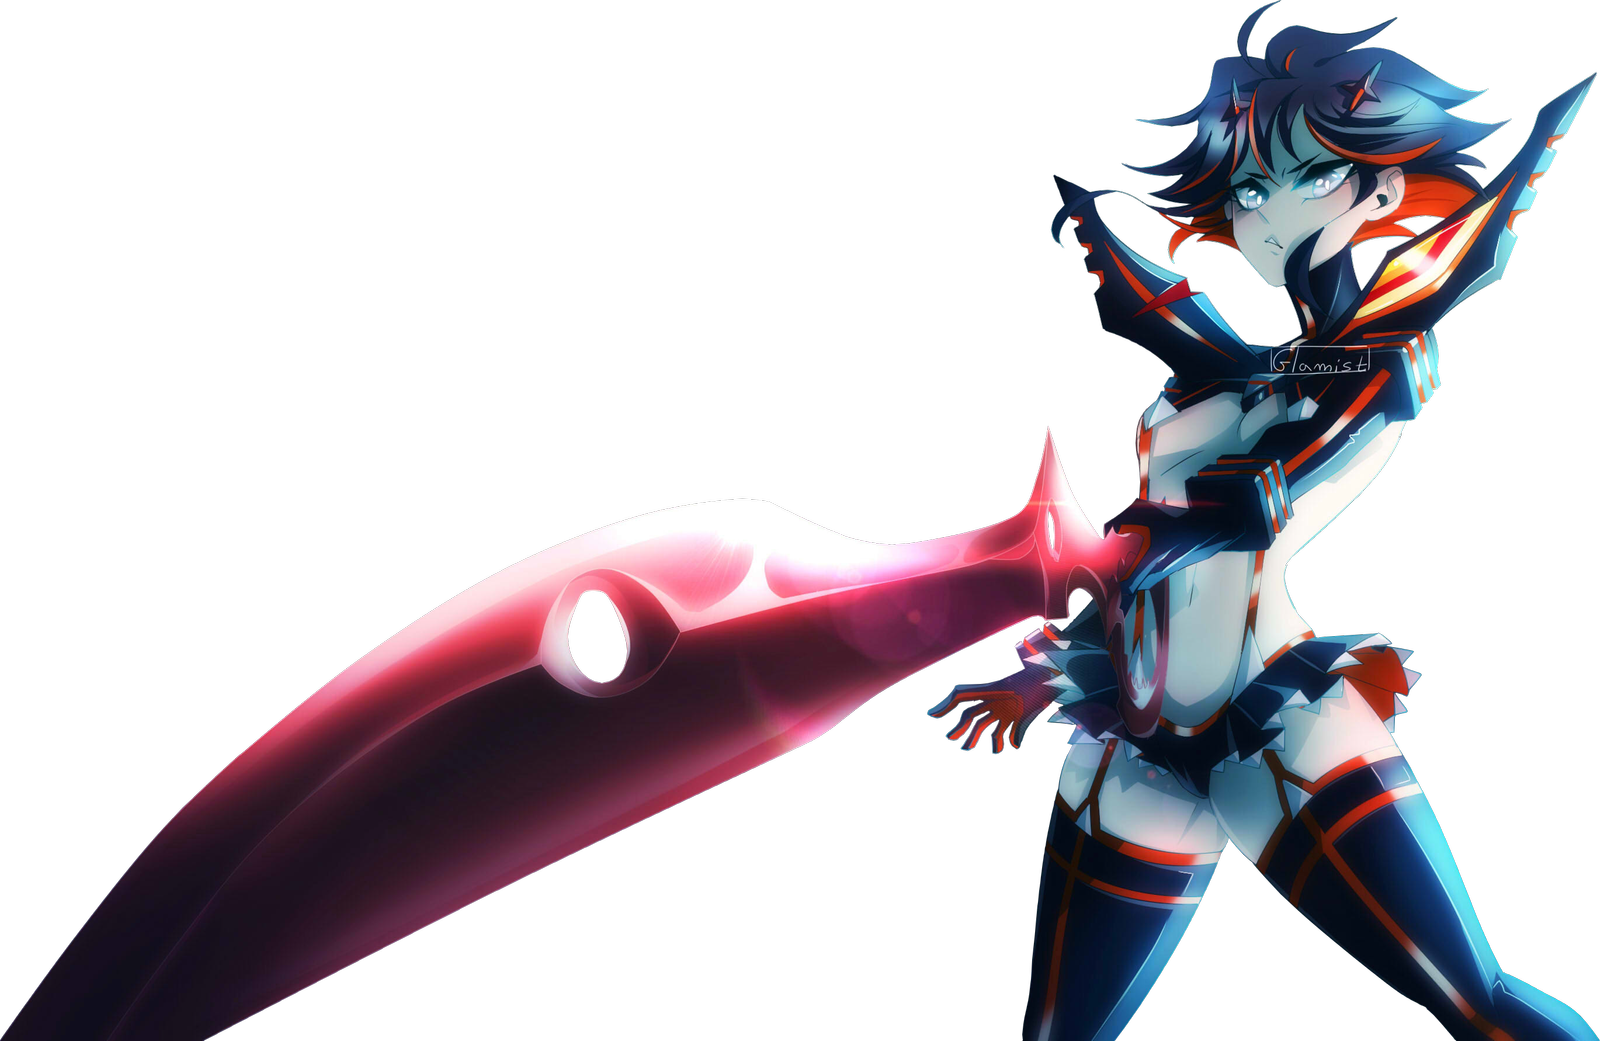 Download Free Png Ryuko Matoi Transparent By Glamist On